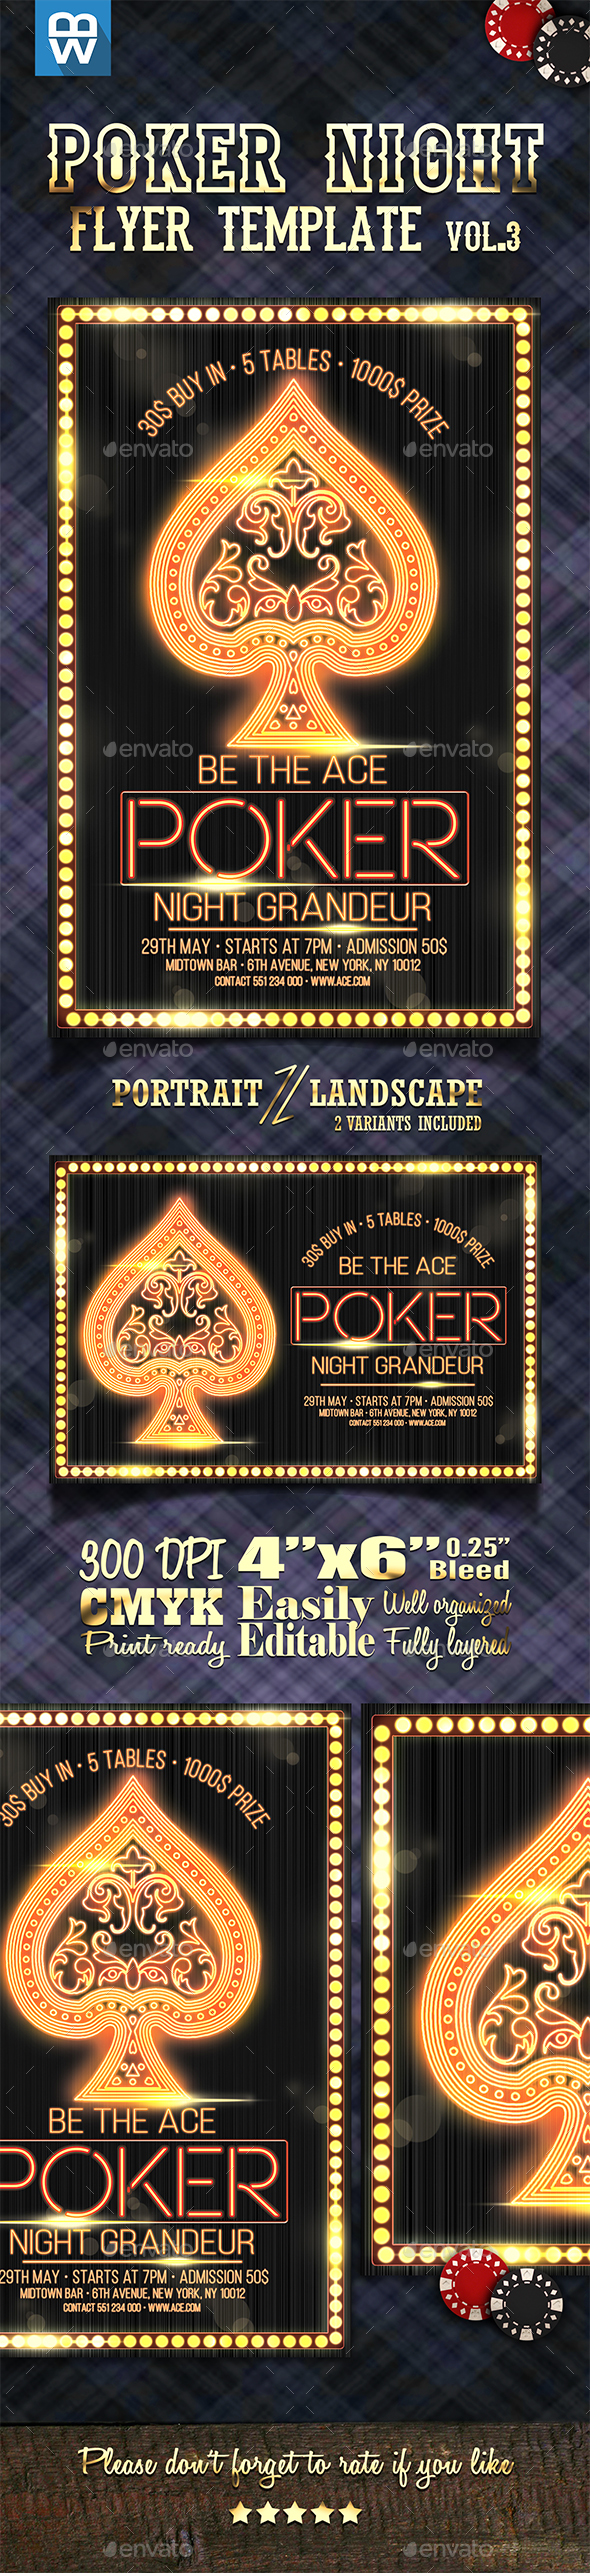 Ace - Poker Night Flyer Template Vol.3